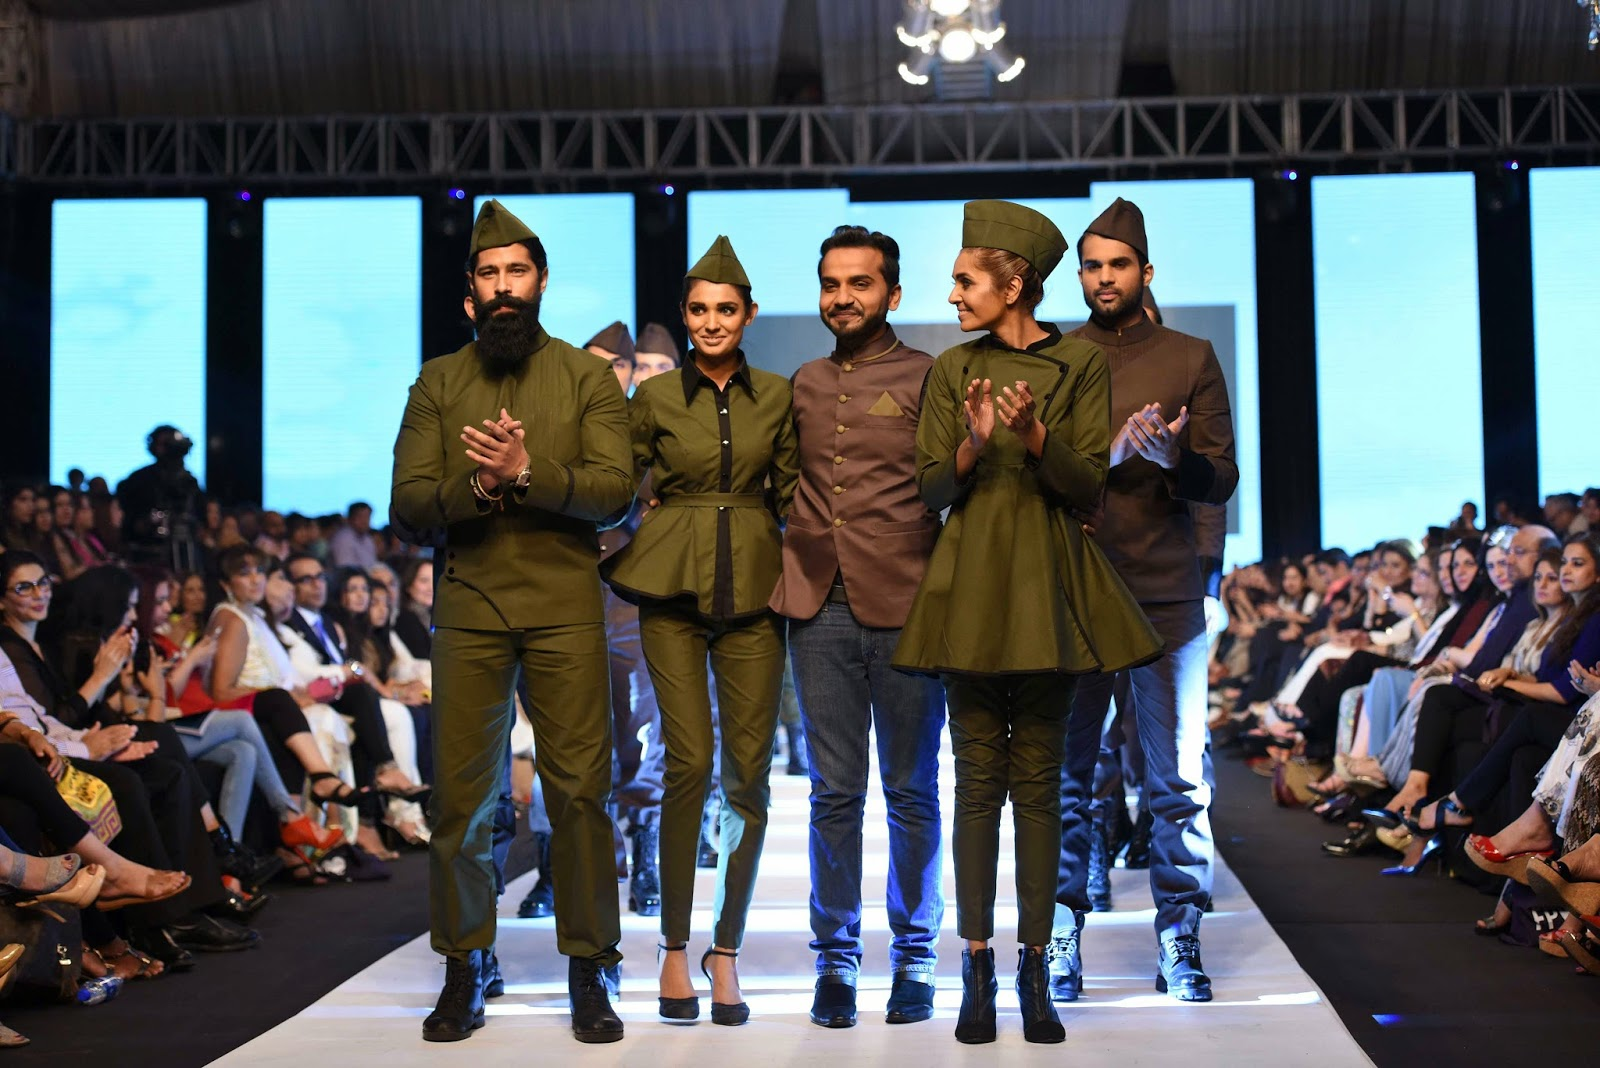 Emraan Rajput at the end of his show with the models